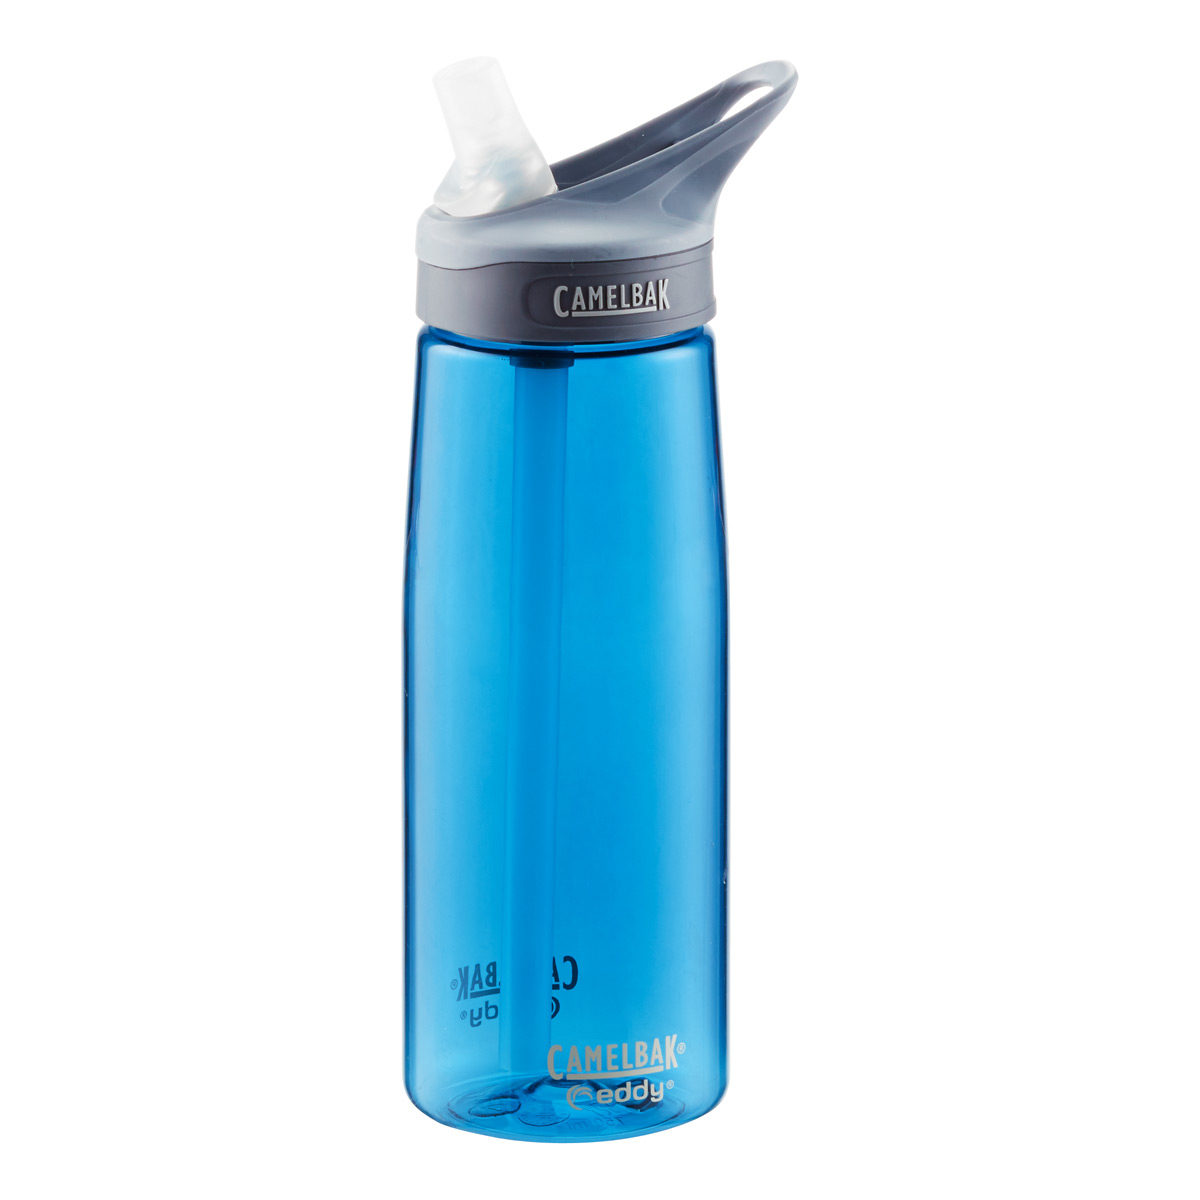 24 oz. CamelBak~ Eddy^ Bottle